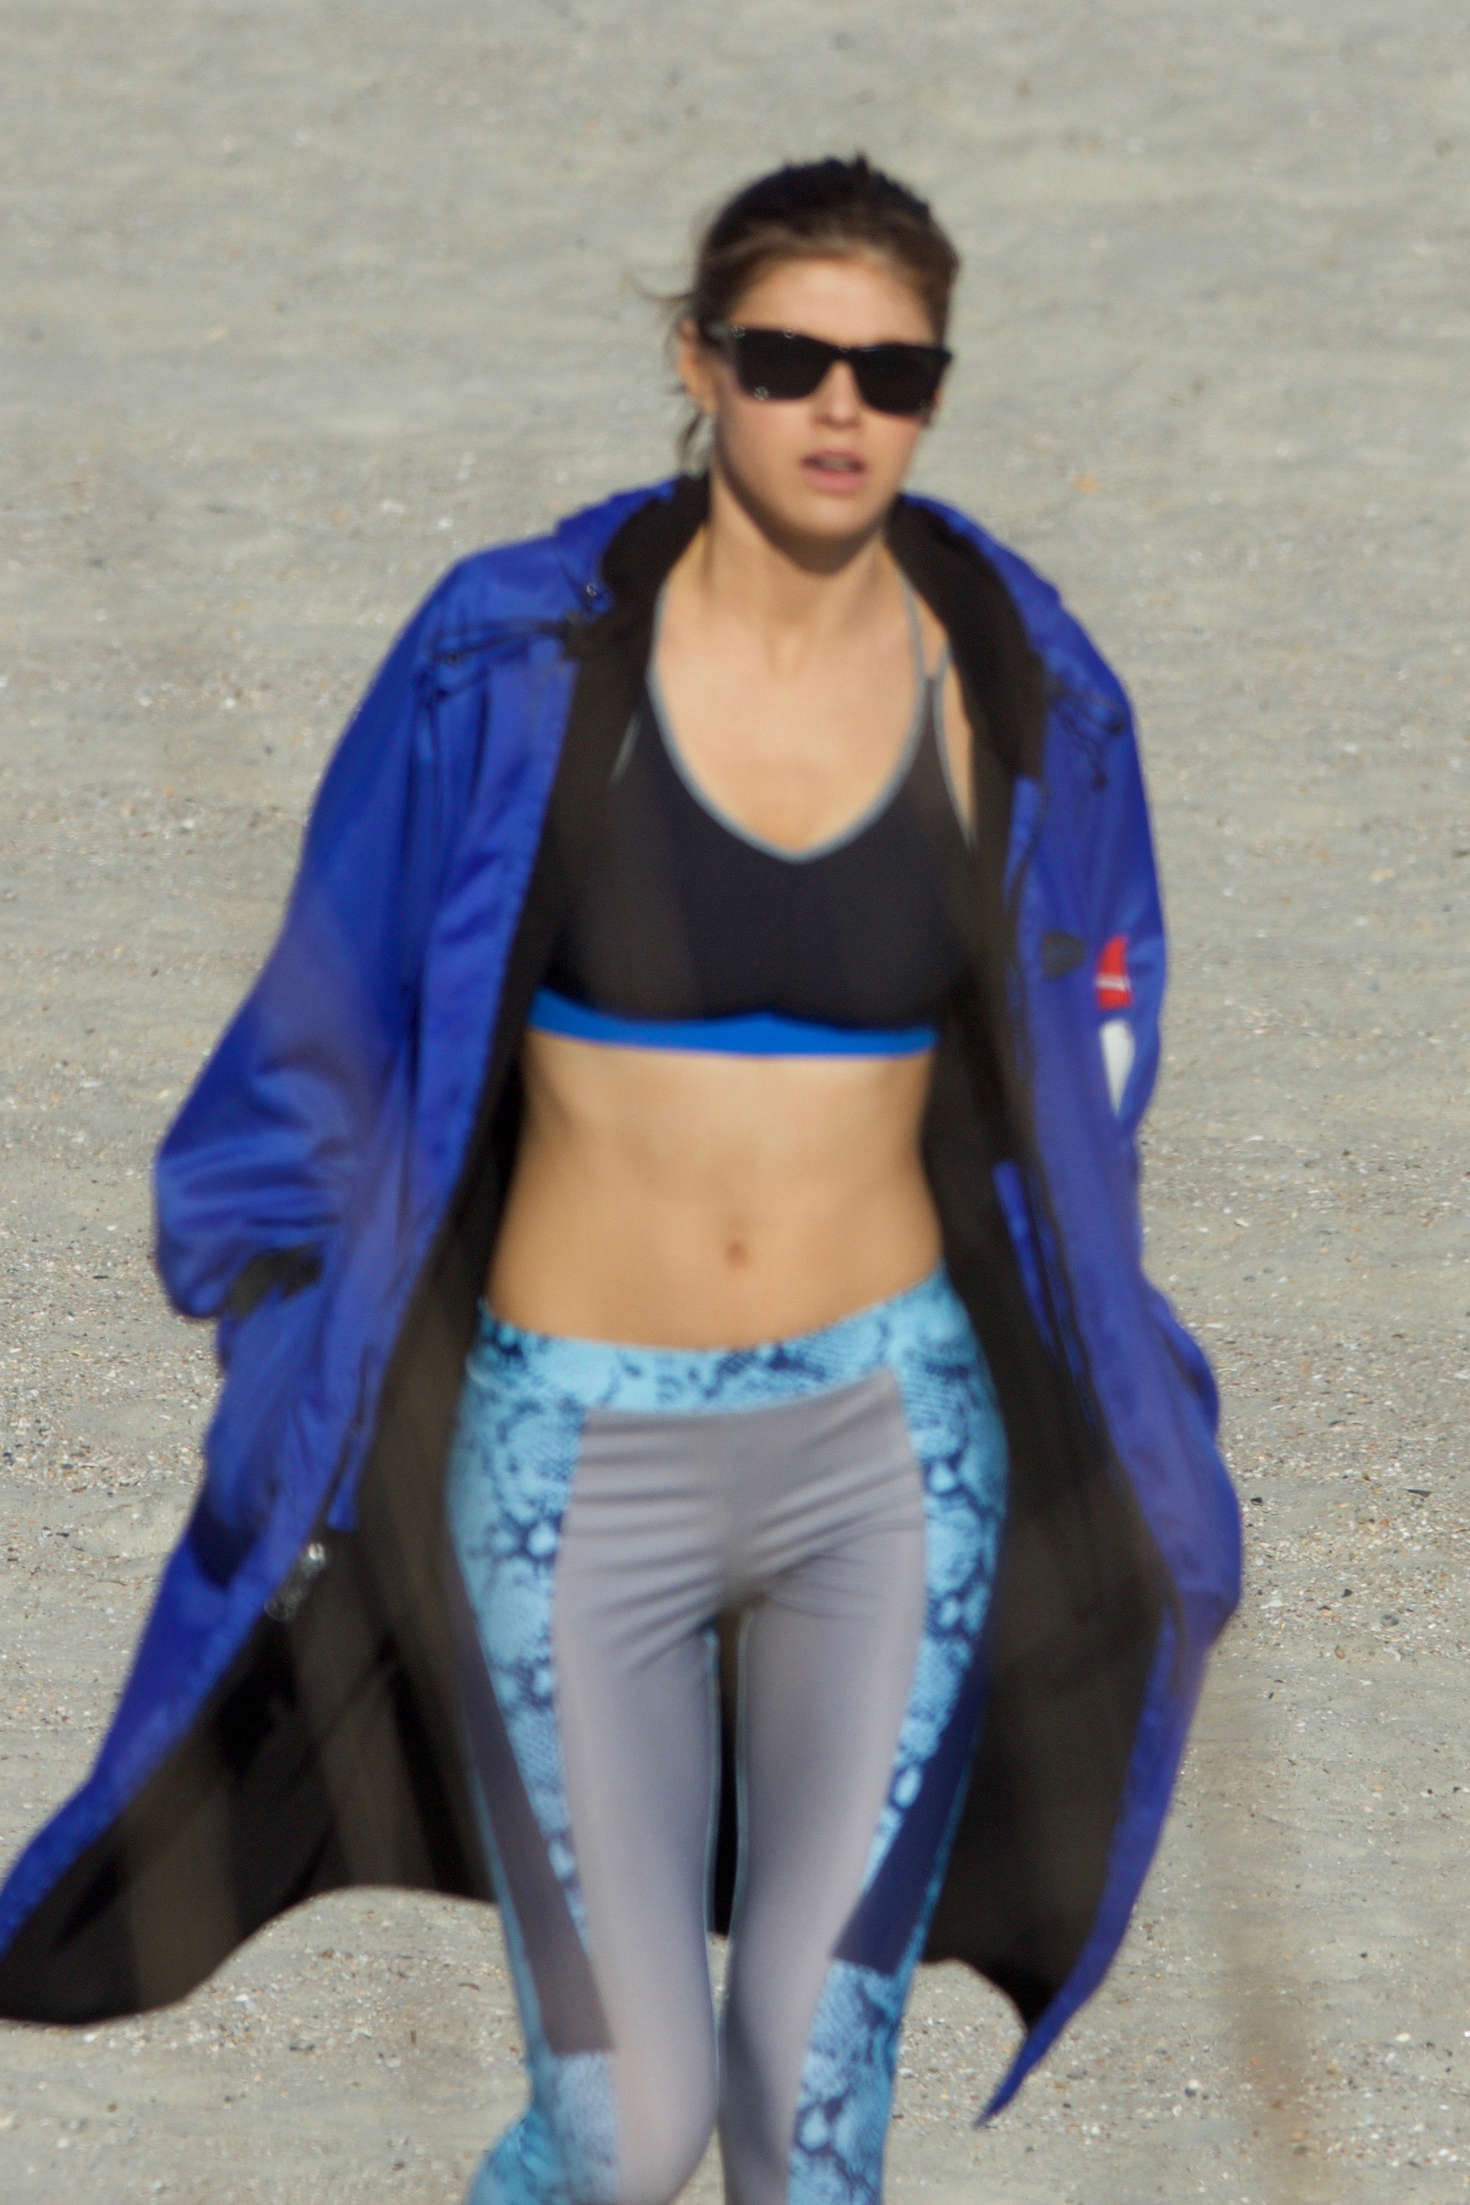 Alexandra Daddario in Tights and Sports Bra on the set of 'Baywatch' in Tybee